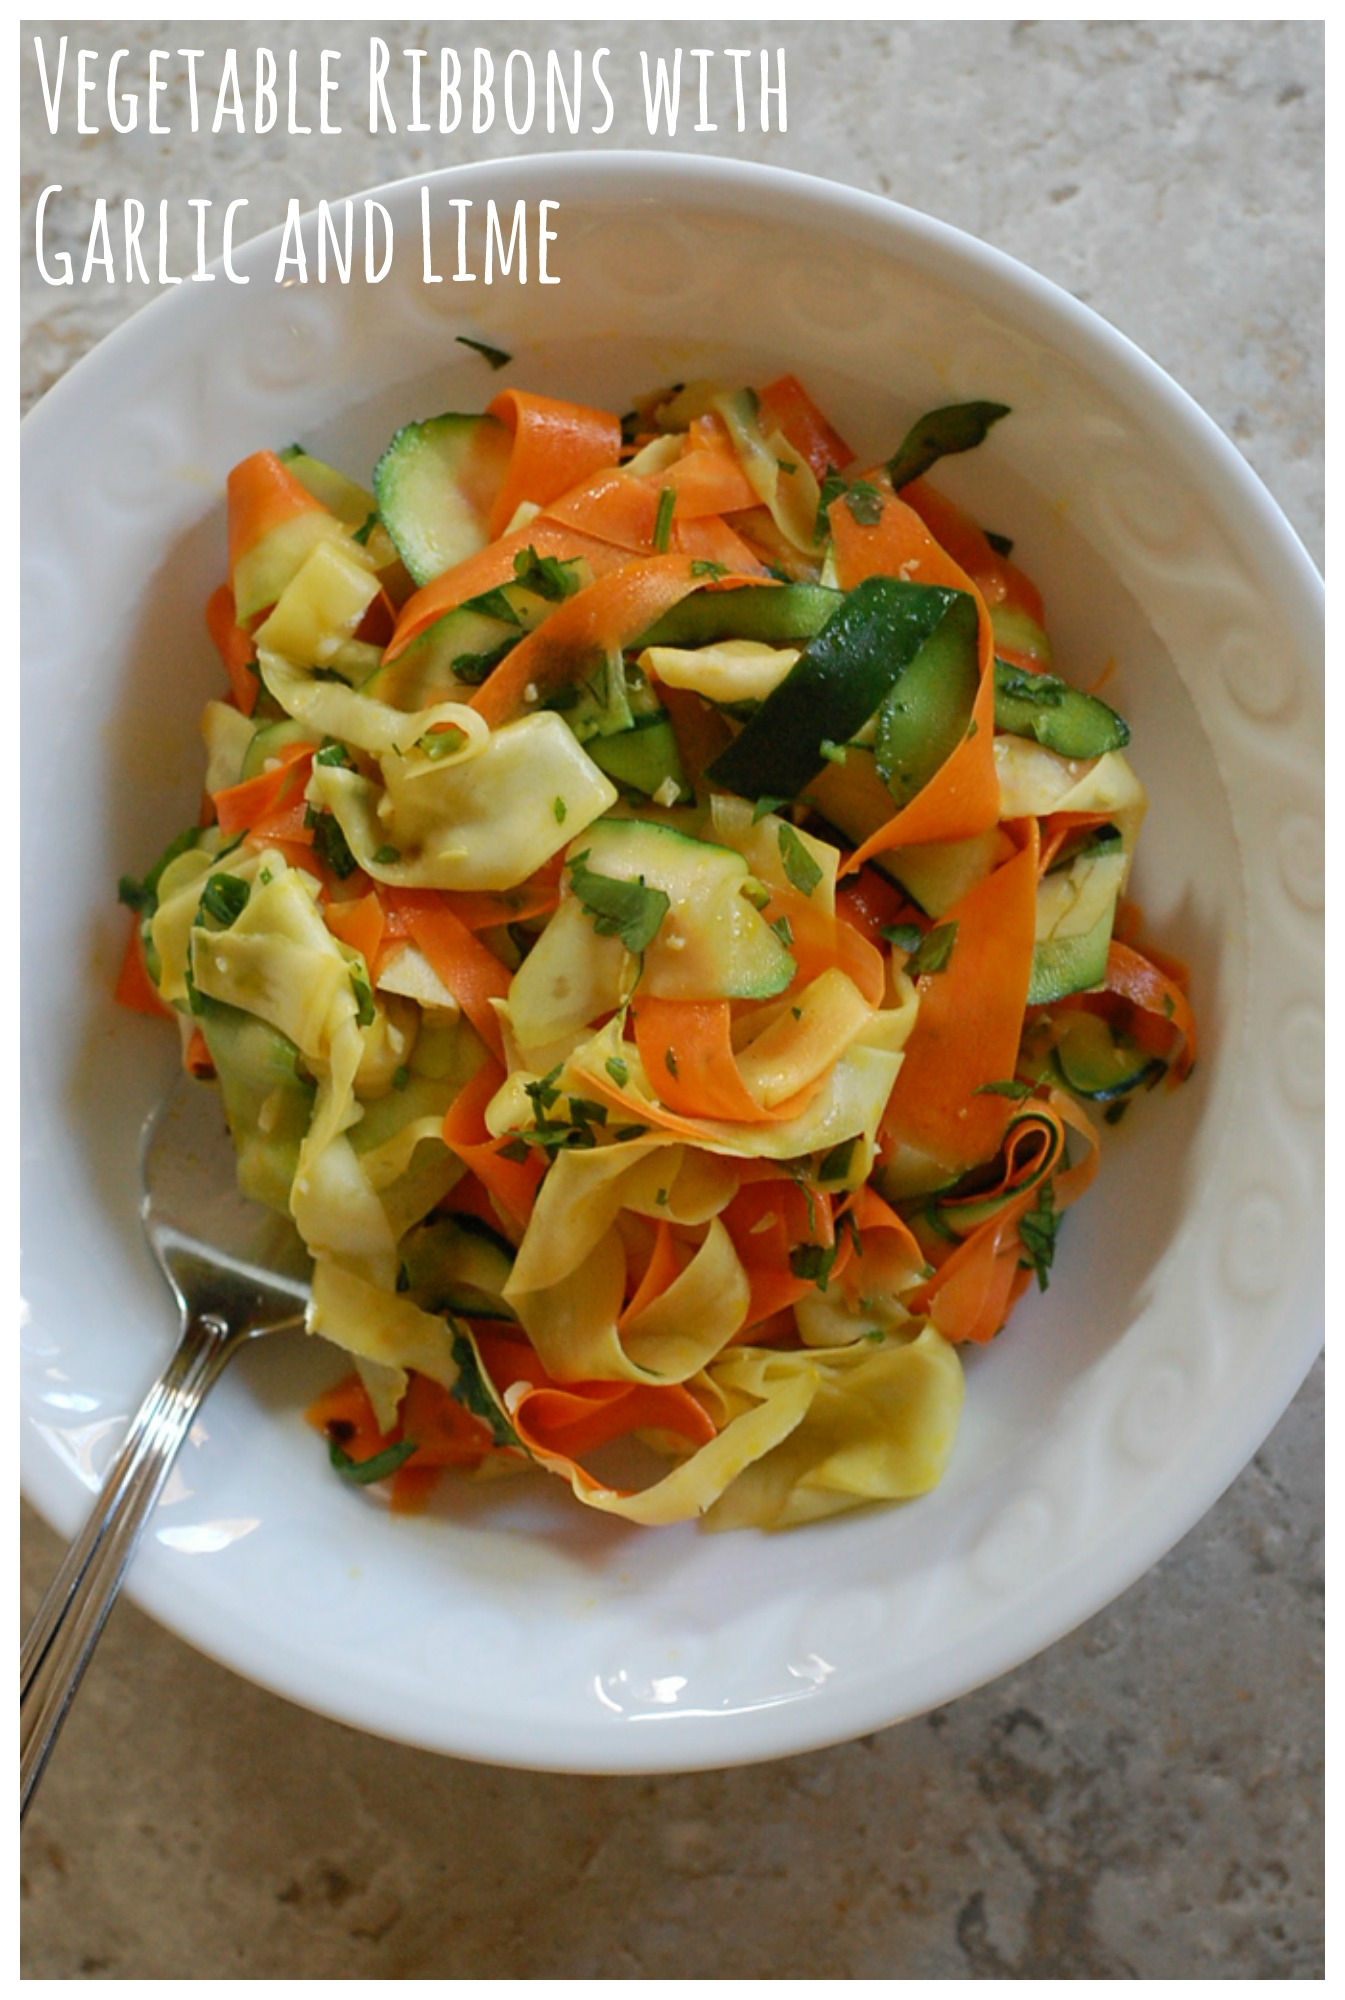 Ribbons of carrots, squash, and zucchini are quickly sauteed with olive oil, garlic, and red pepper flakes for an easy, vegan, and gluten-free weeknight side!